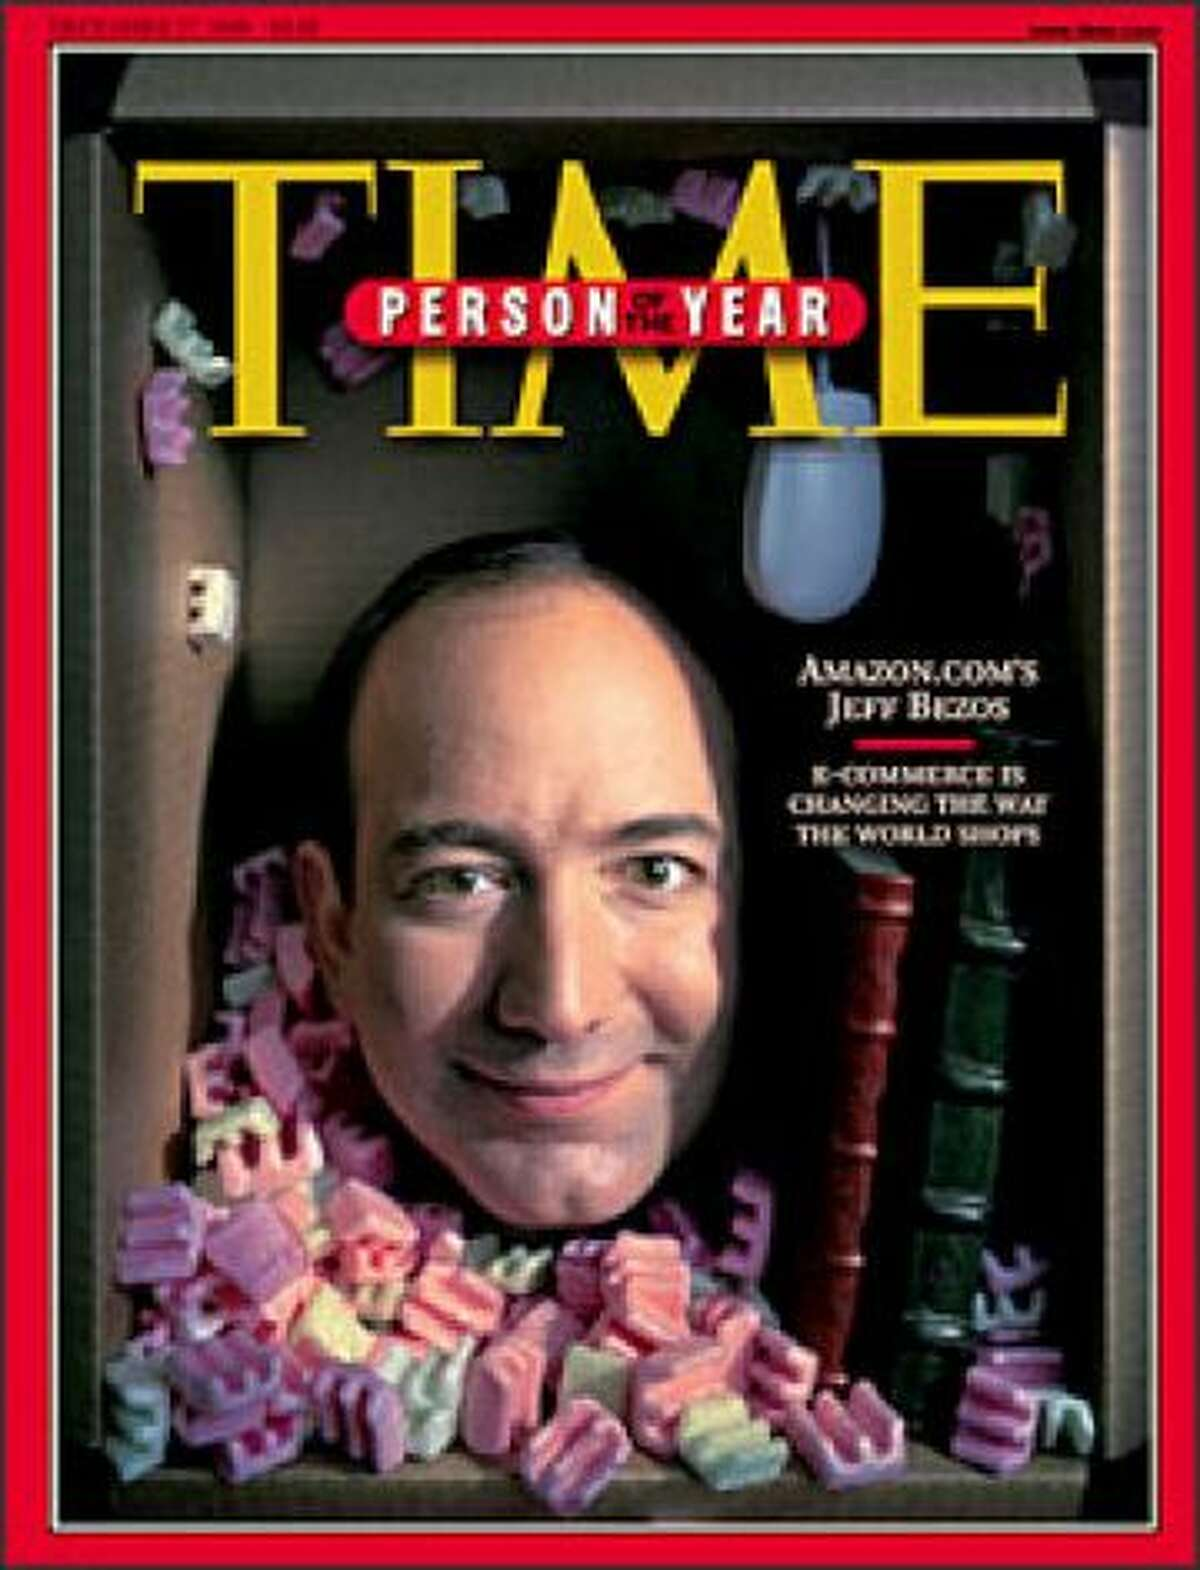 Jeff Bezos in 1999: Known as the geeky founder and CEO of Amazon.com, Inc., here on the cover of the Dec. 20, 1999, issue of Time magazine as the magazine's